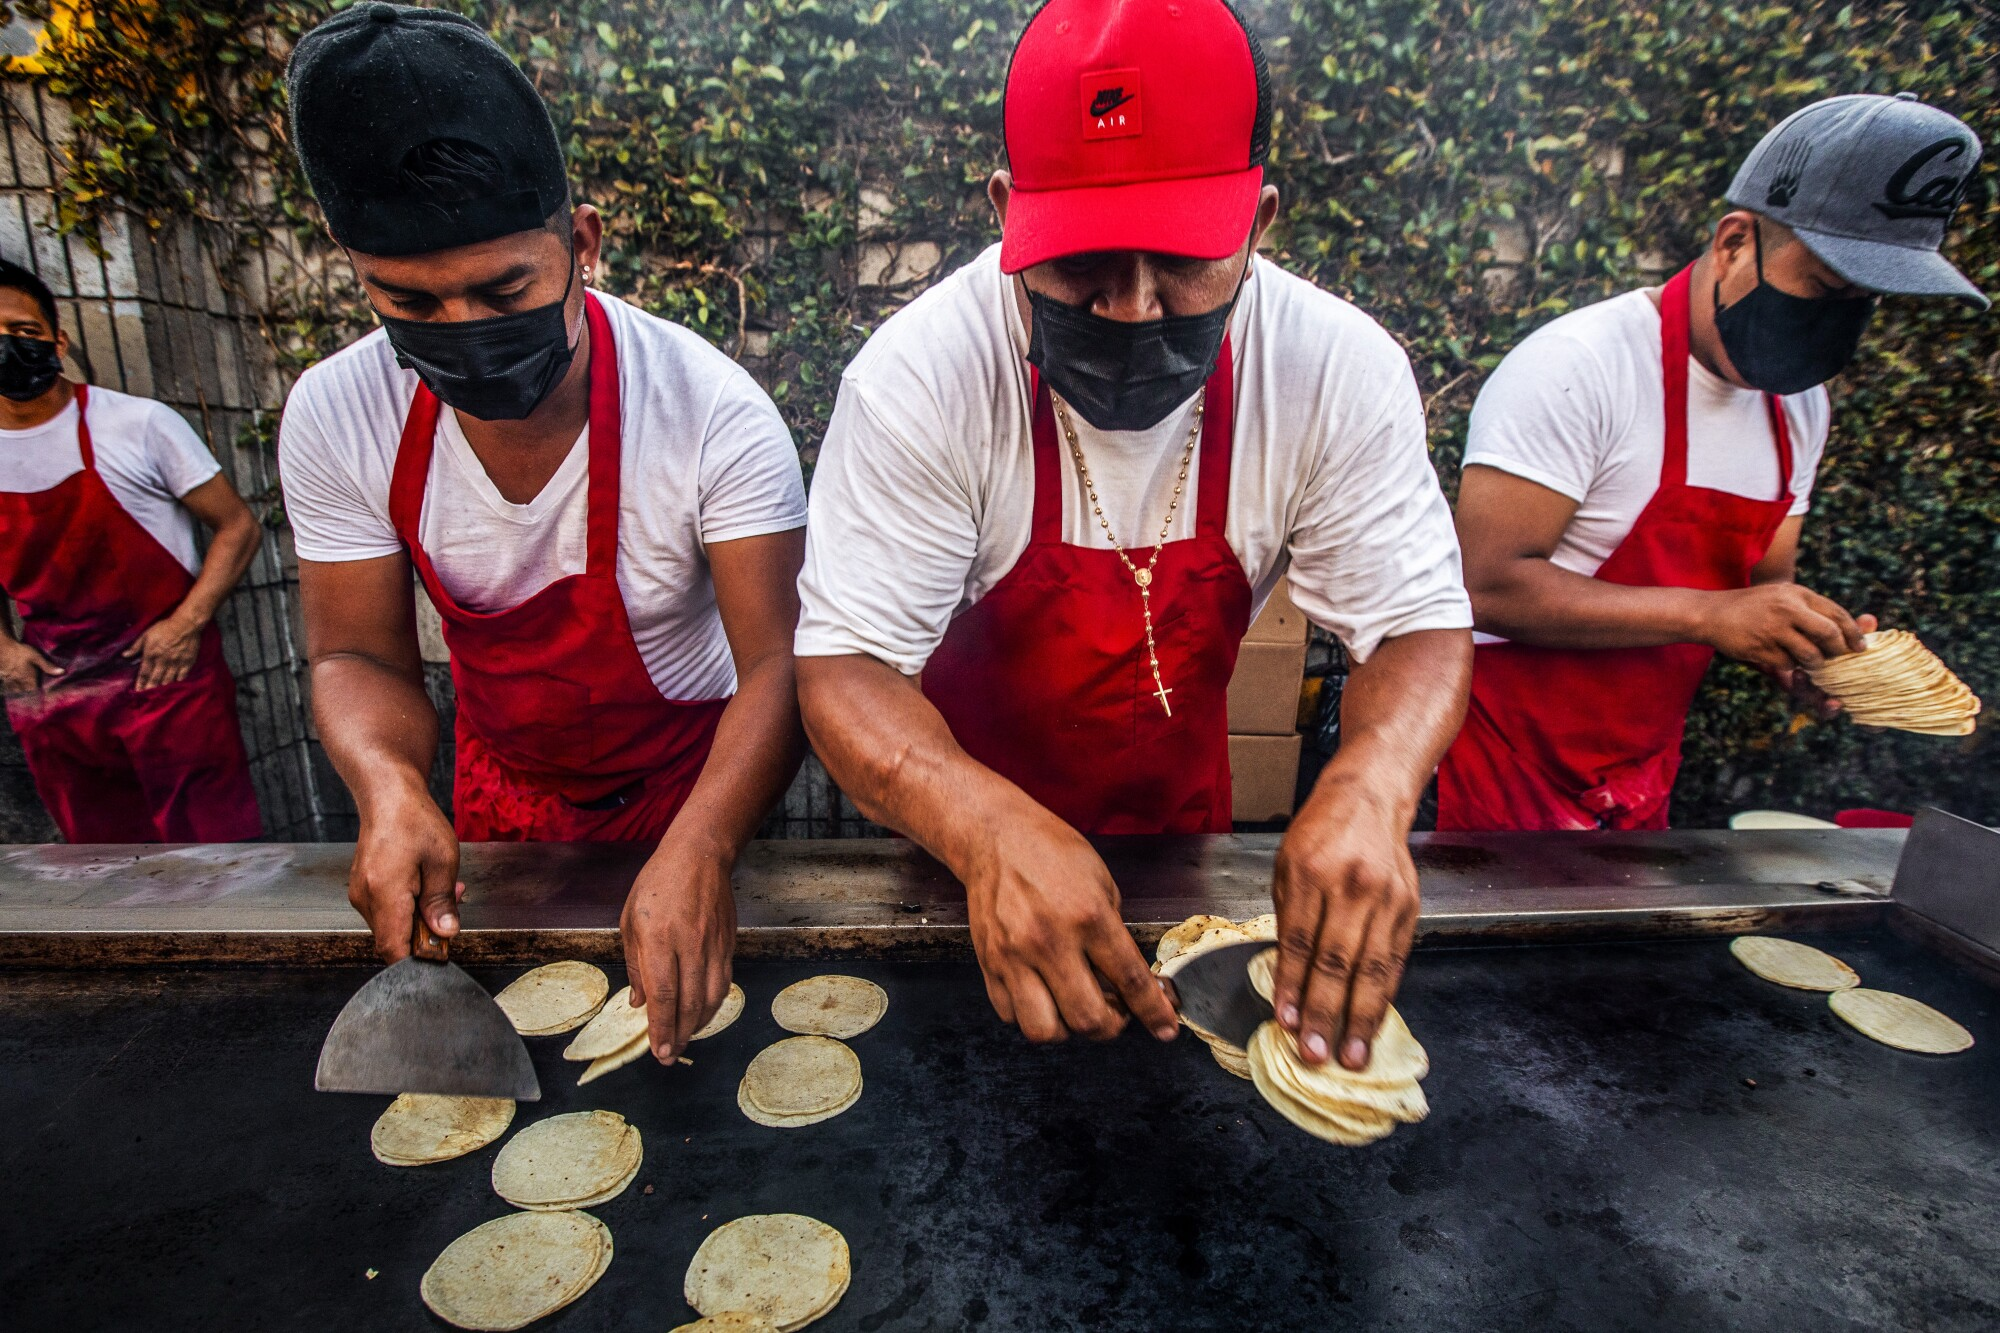 Cooks handle tortillas on and near a flat-top grill.